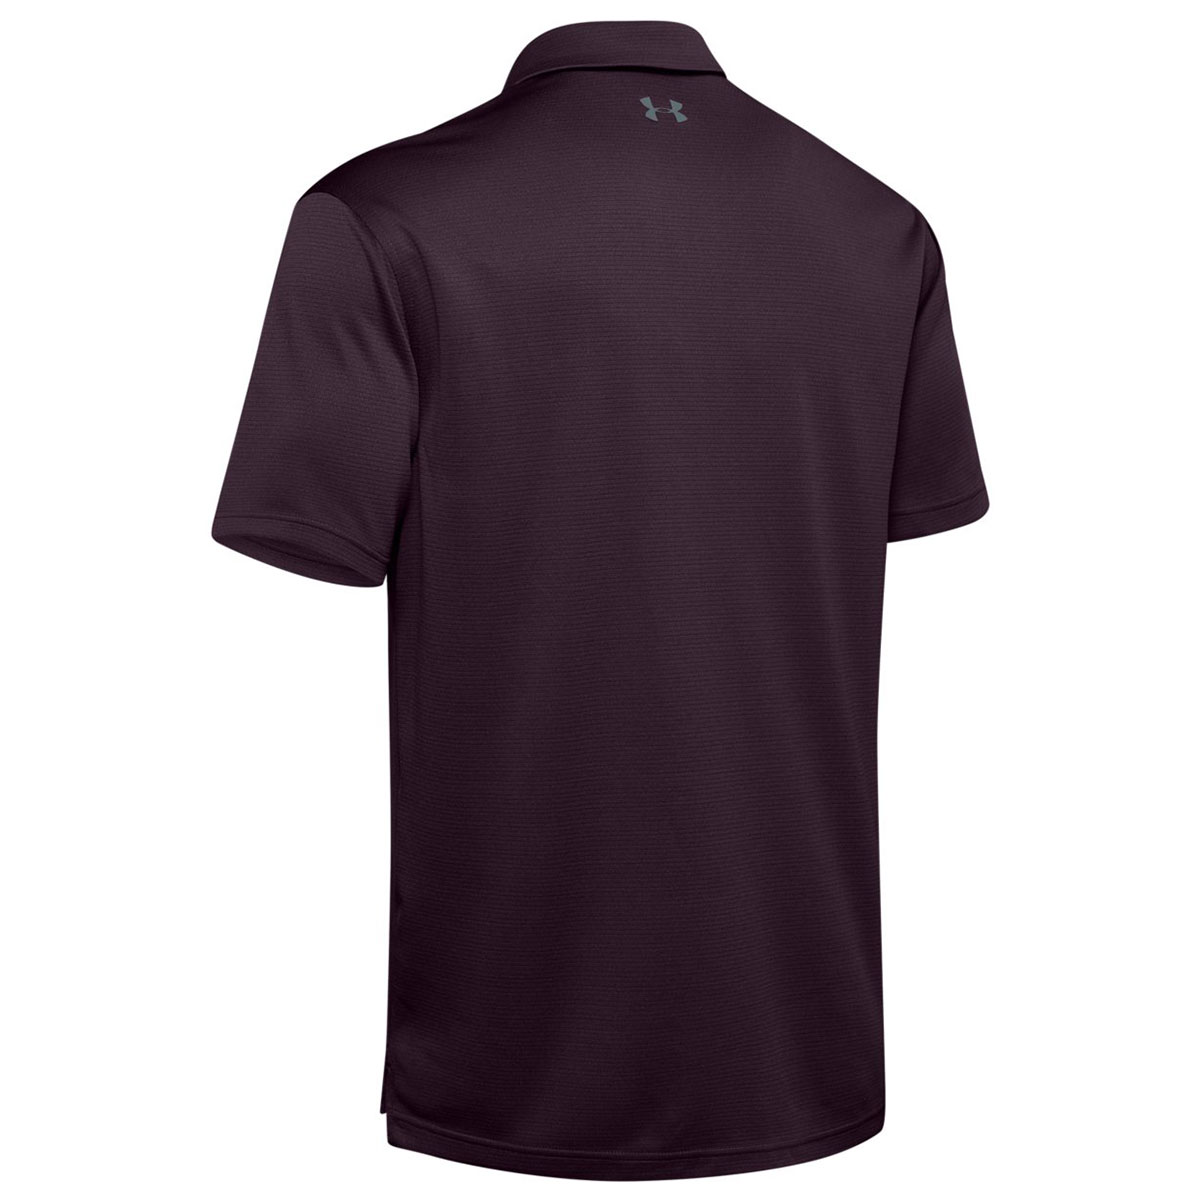 Under-Armour-Mens-2019-Golf-Tech-Wicking-Textured-Soft-Light-Polo-Shirt thumbnail 43